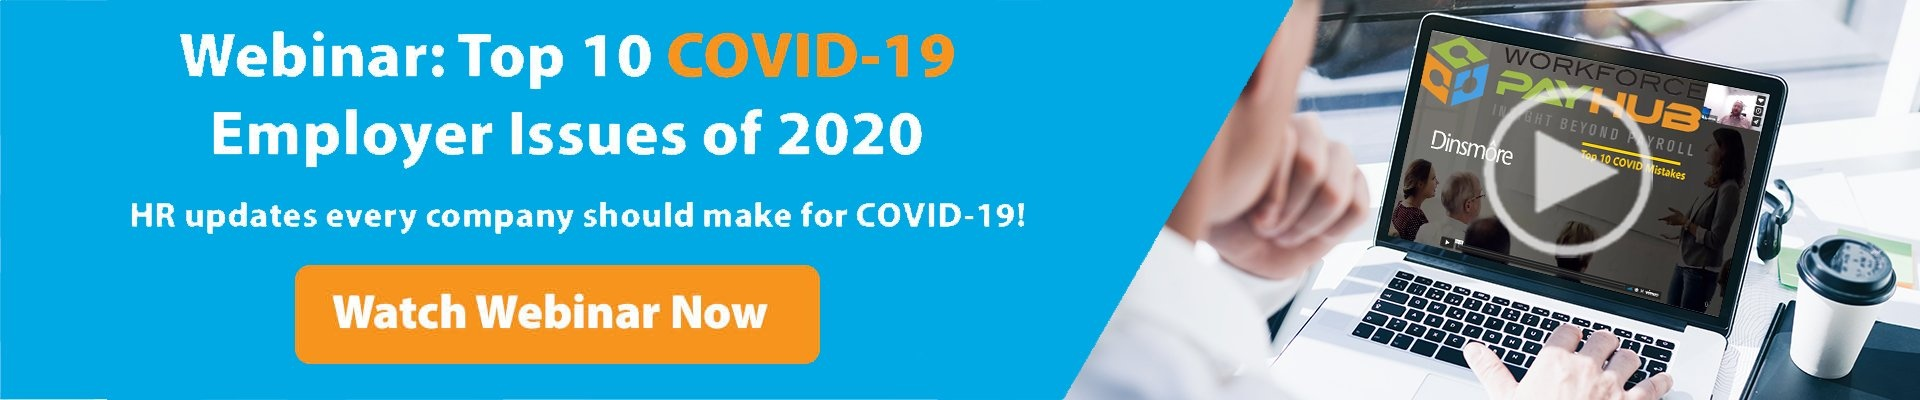 Top 10 COVID-19 Employer Issues of 2020 Webinar